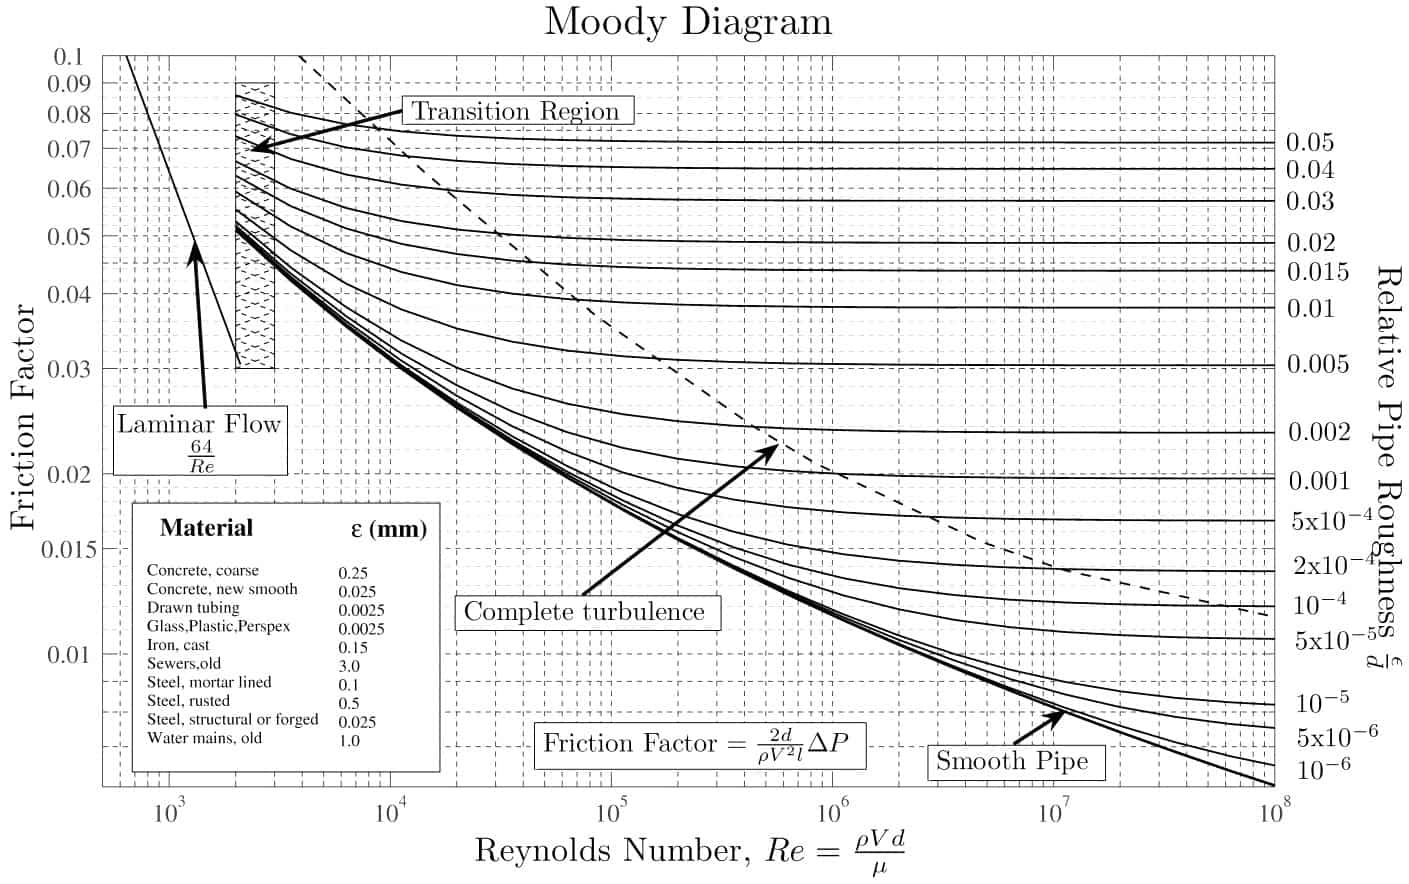 139808 Snelheid Stikstof also 69227 Use Of Ribbed Hoses And Its Adverse Effects On The Intake Air Flow further Friction Factor Turbulent Flow Colebrook as well Pressure Loss In Pipe likewise Duct Friction Loss Chart. on moody diagram equation